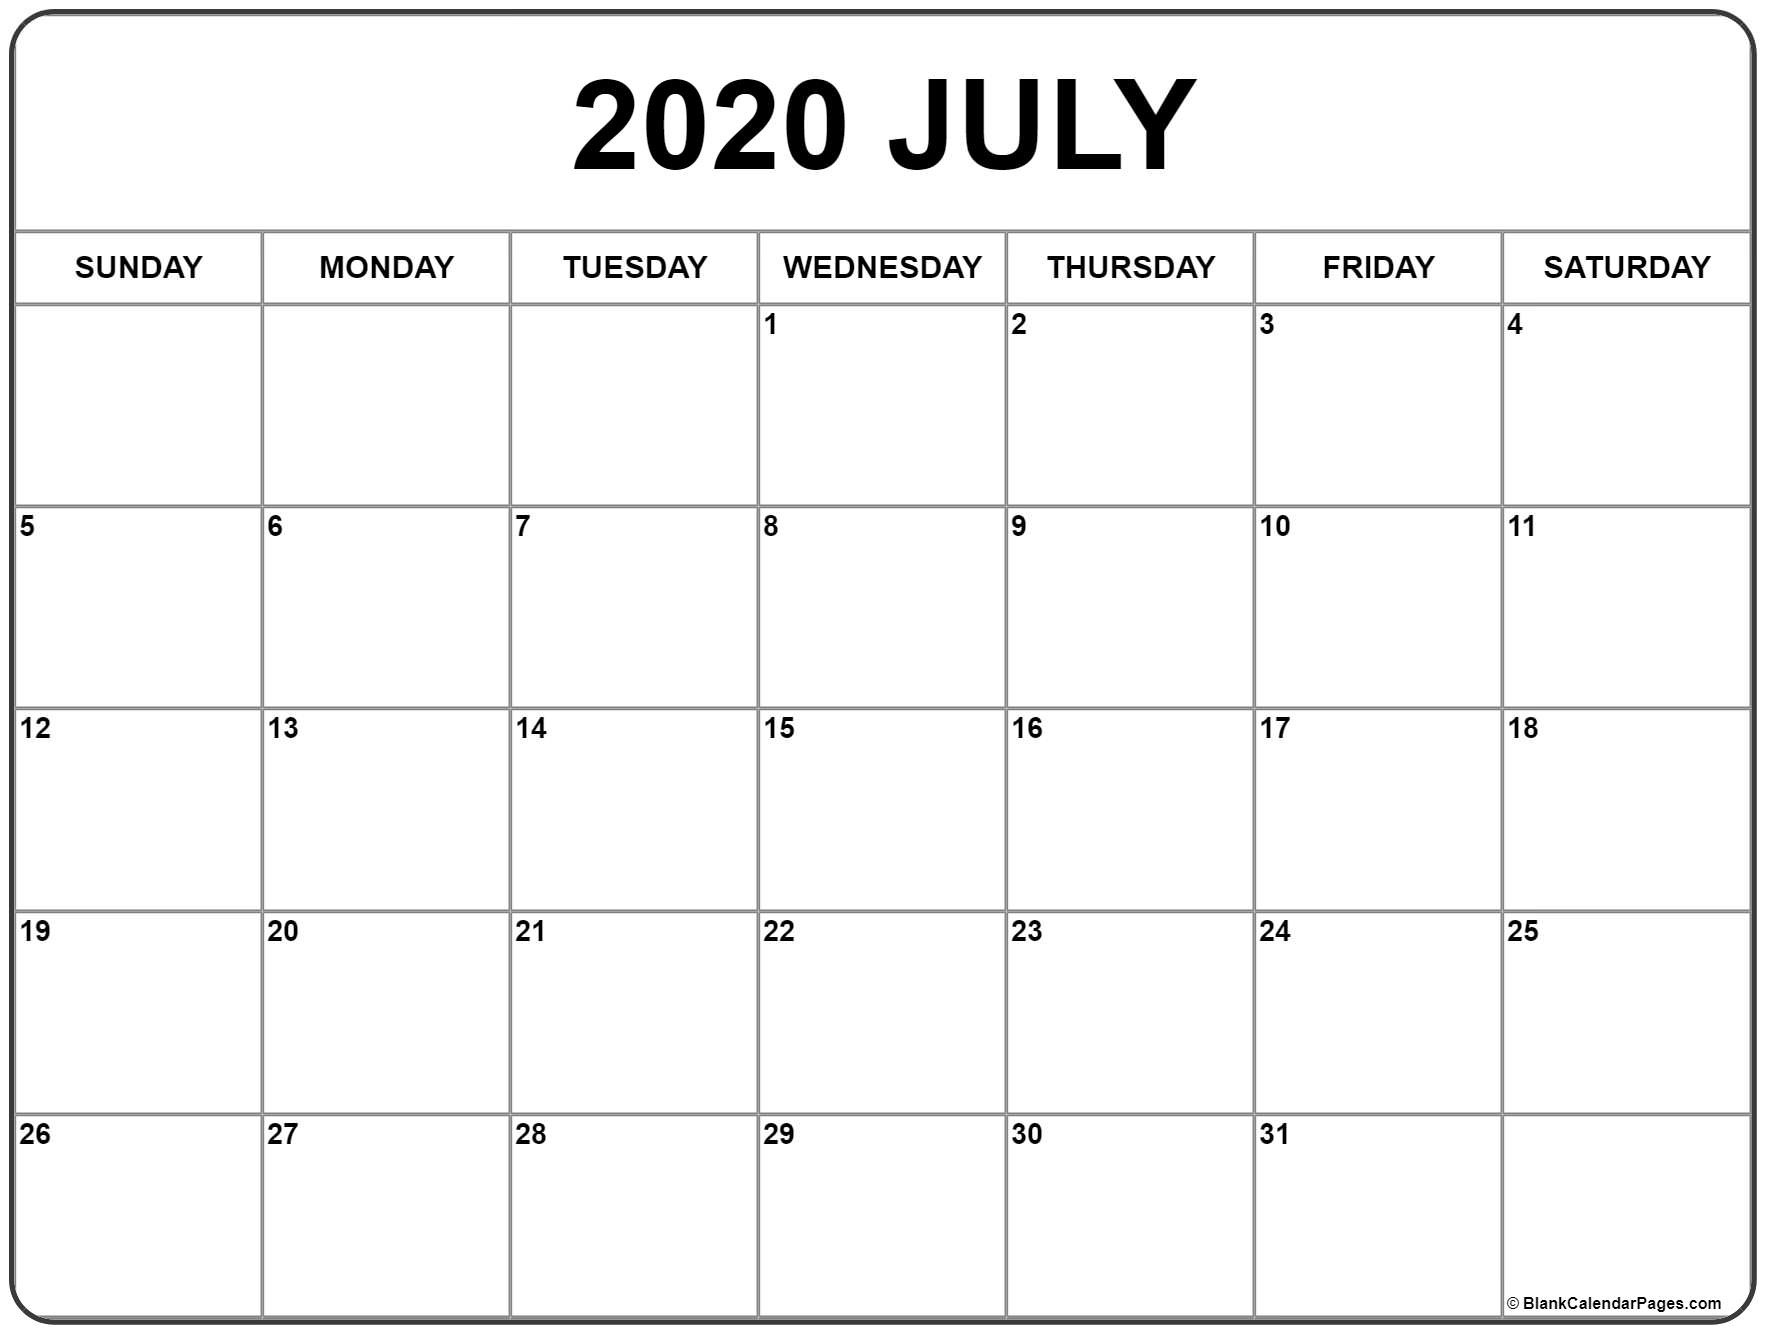 July 2020 Calendar | Free Printable Monthly Calendars-Printable Blank 2020 Calendar For June July And August